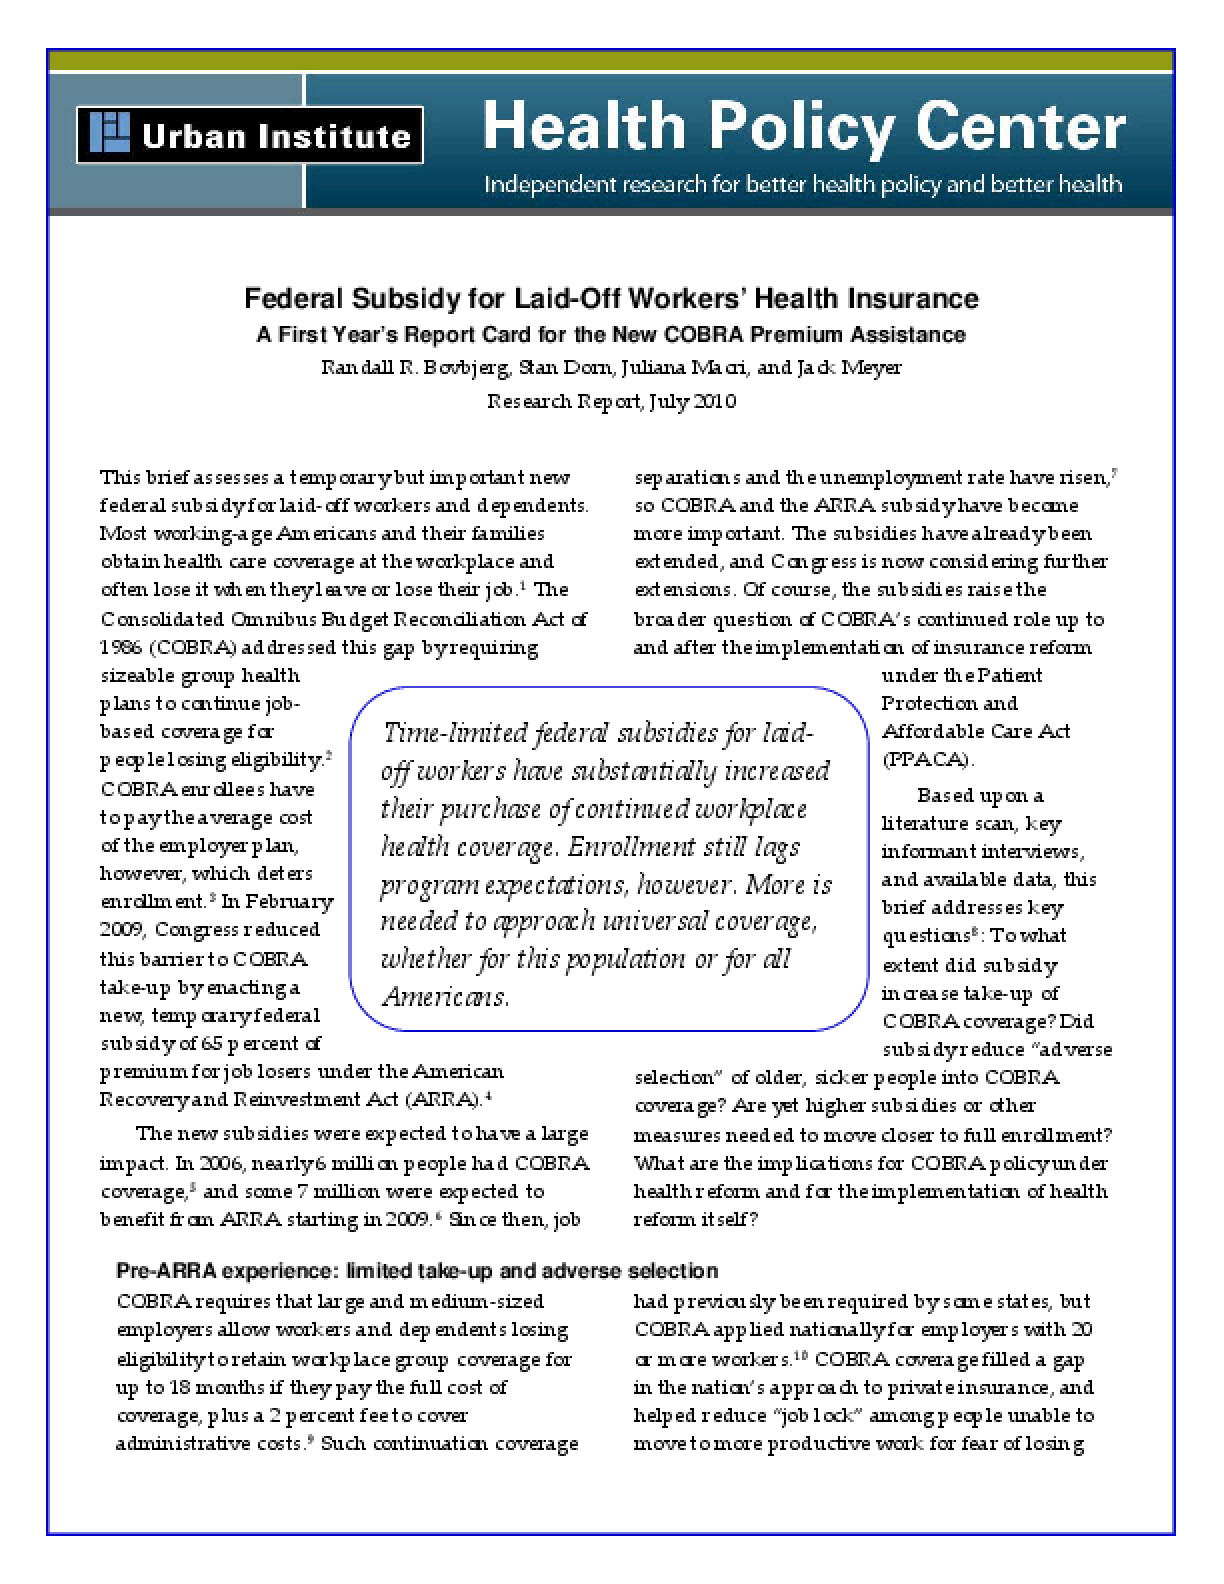 Federal Subsidy for Laid-Off Workers' Health Insurance: A First Year's Report Card for the New COBRA Premium Assistance